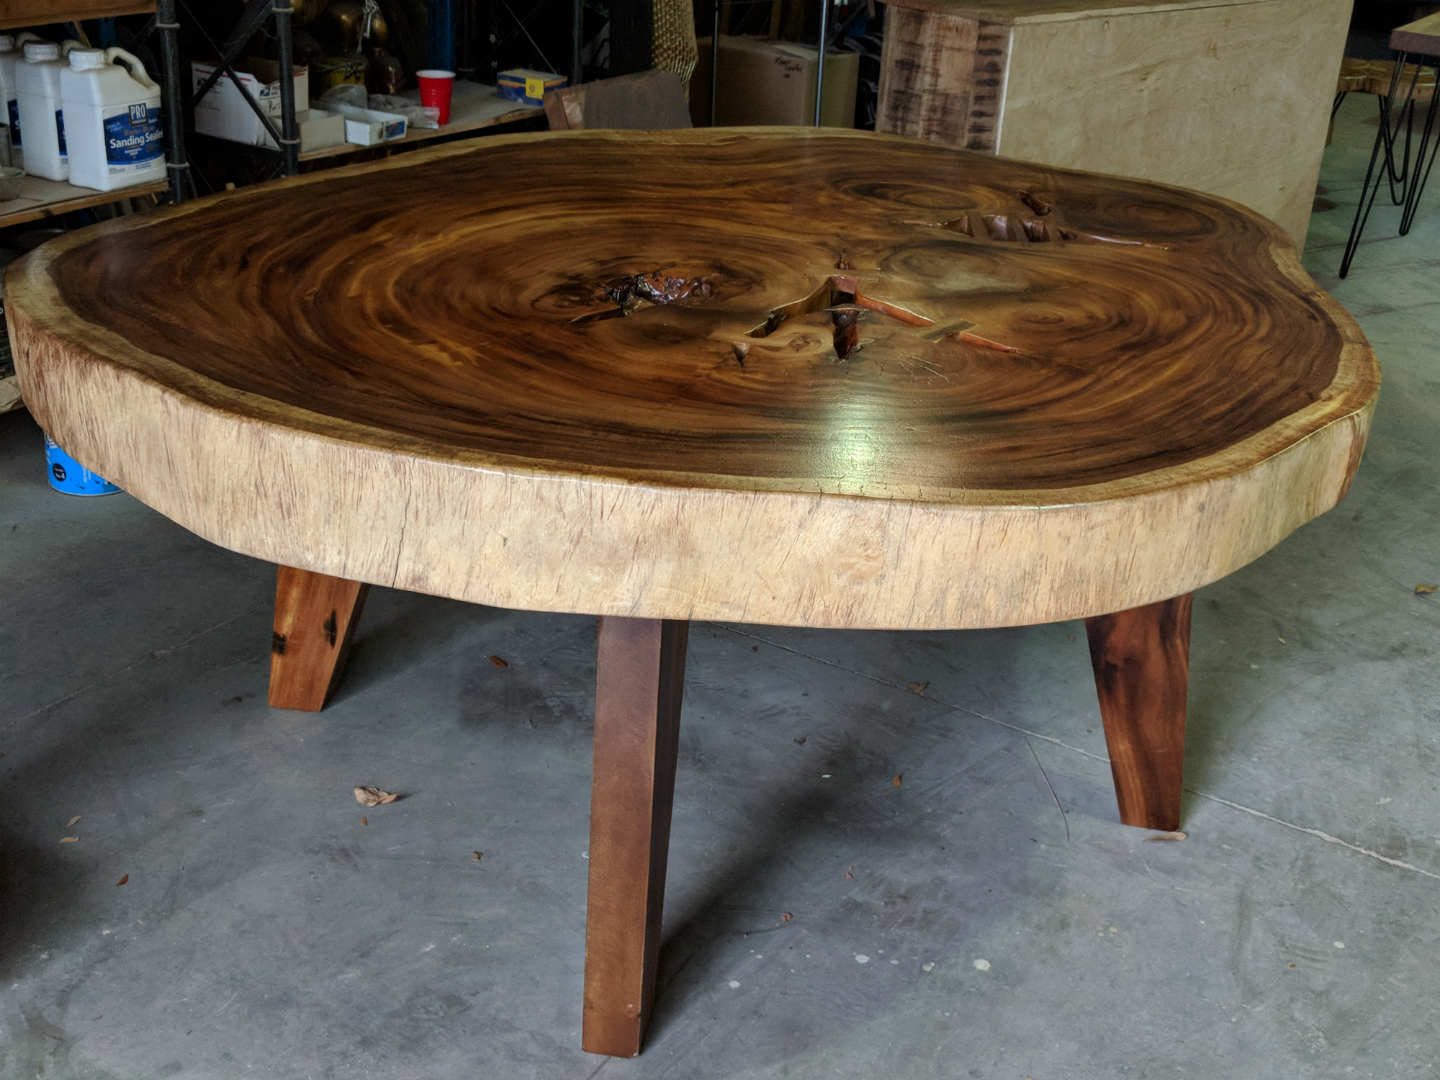 Round Slab Dining Tables - Decor Direct Wholesale Warehouse